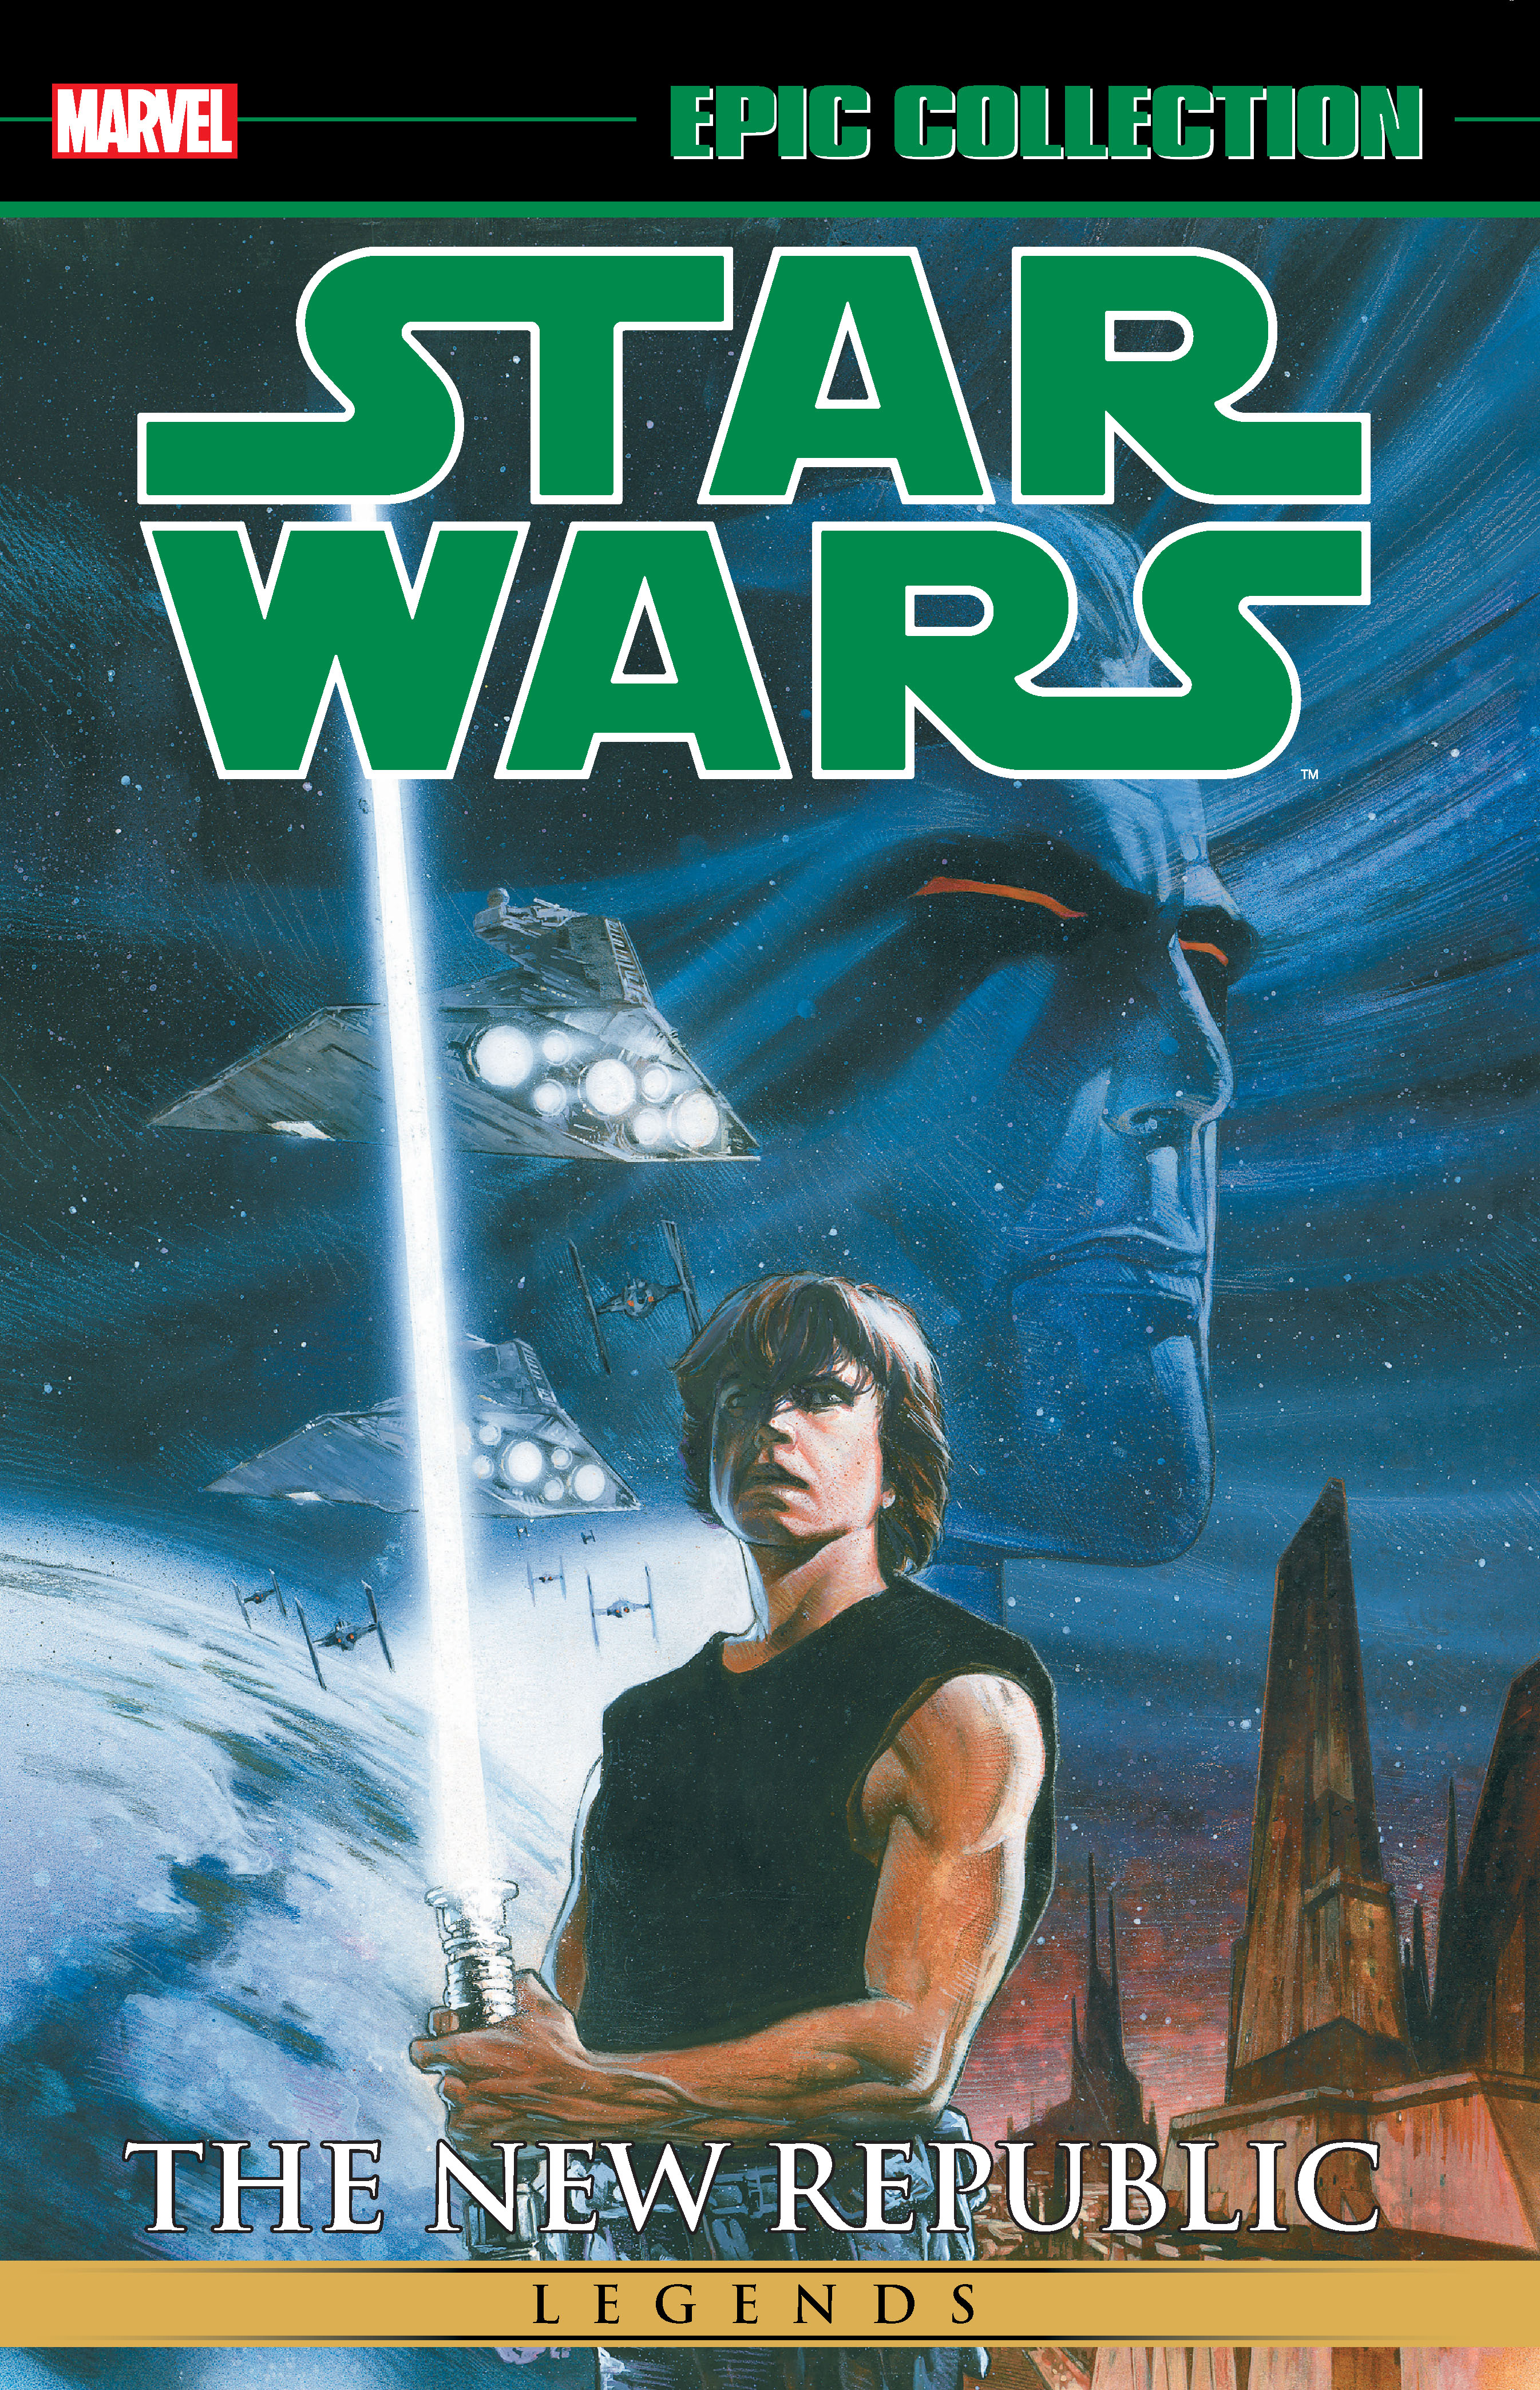 Star Wars Legends Epic Collection: The New Republic Vol. 4 (Trade Paperback)